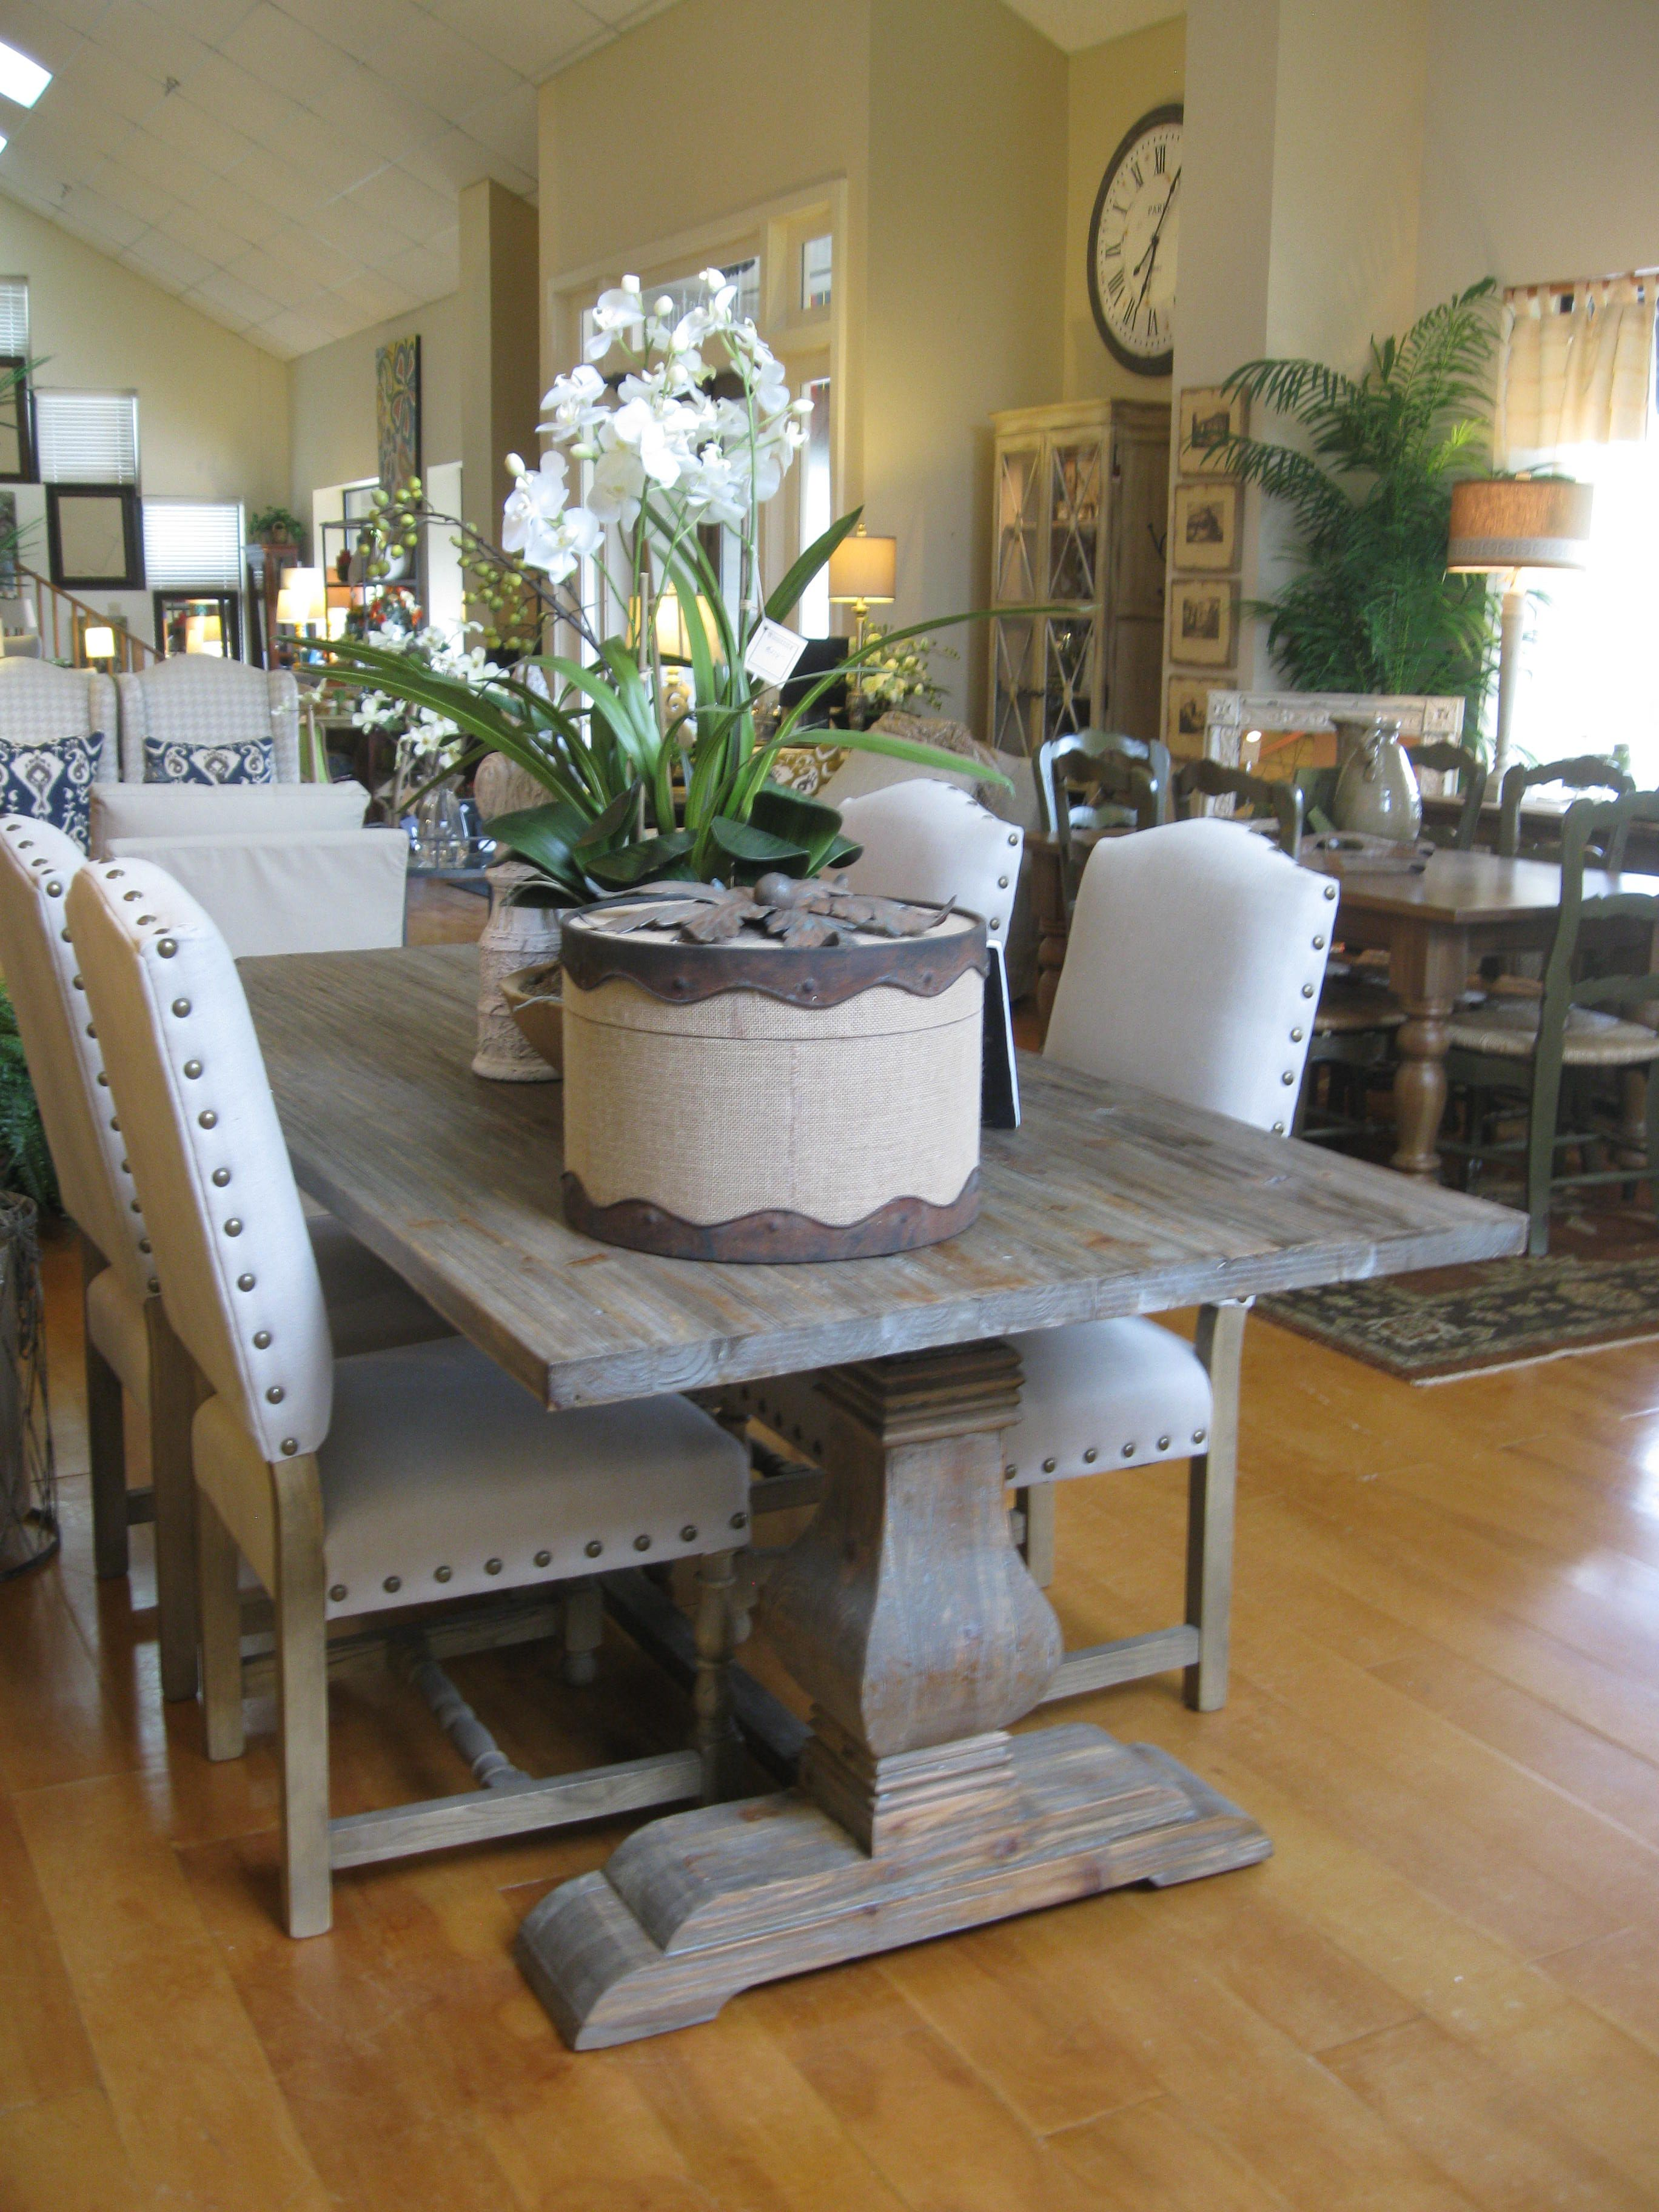 49 Epic Diy Dinning Table Projects For Your Home  Diy Projects Glamorous Rustic Wood Dining Room Tables Review